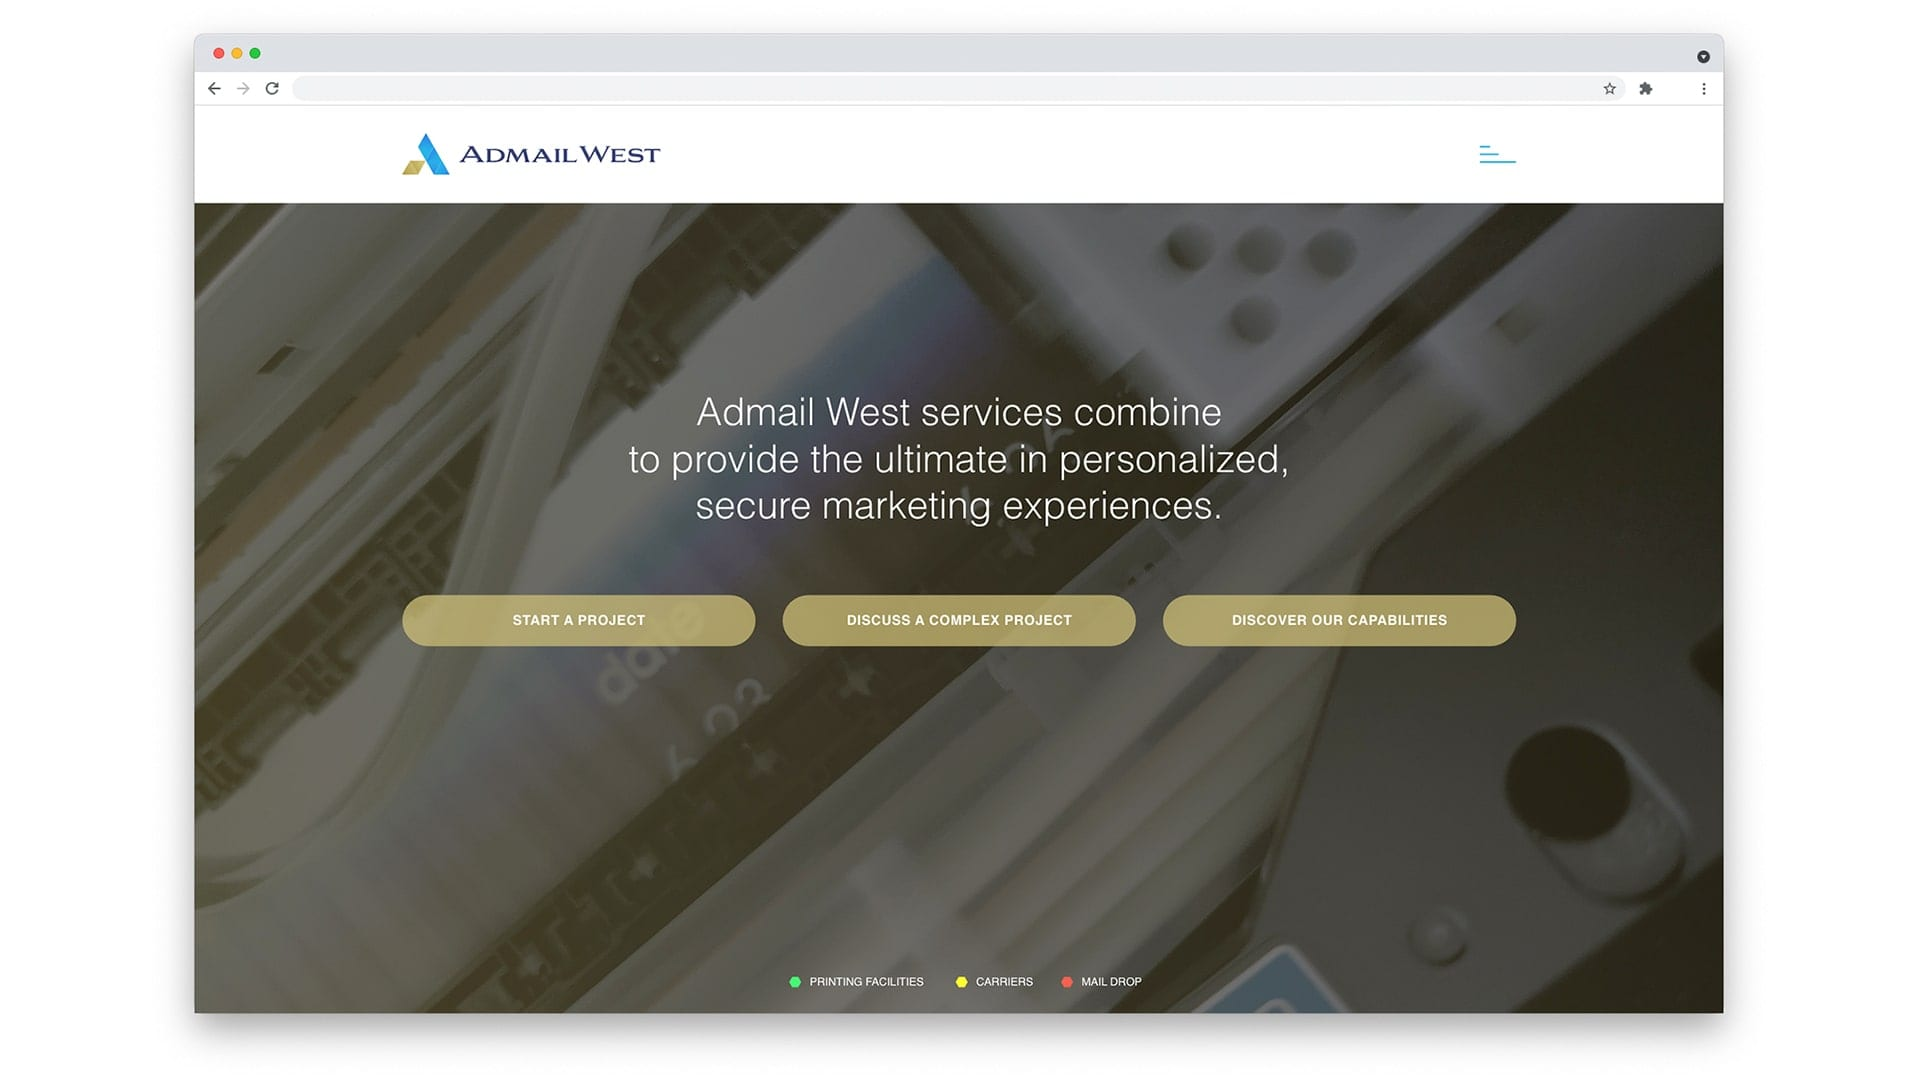 Admail West home page design